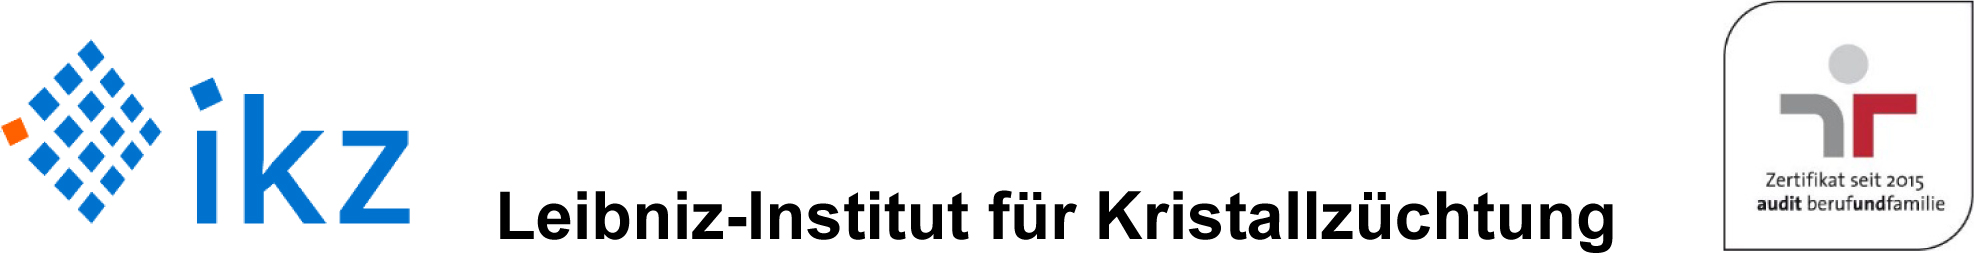 PhD position (m/f/d) - ikz - Header